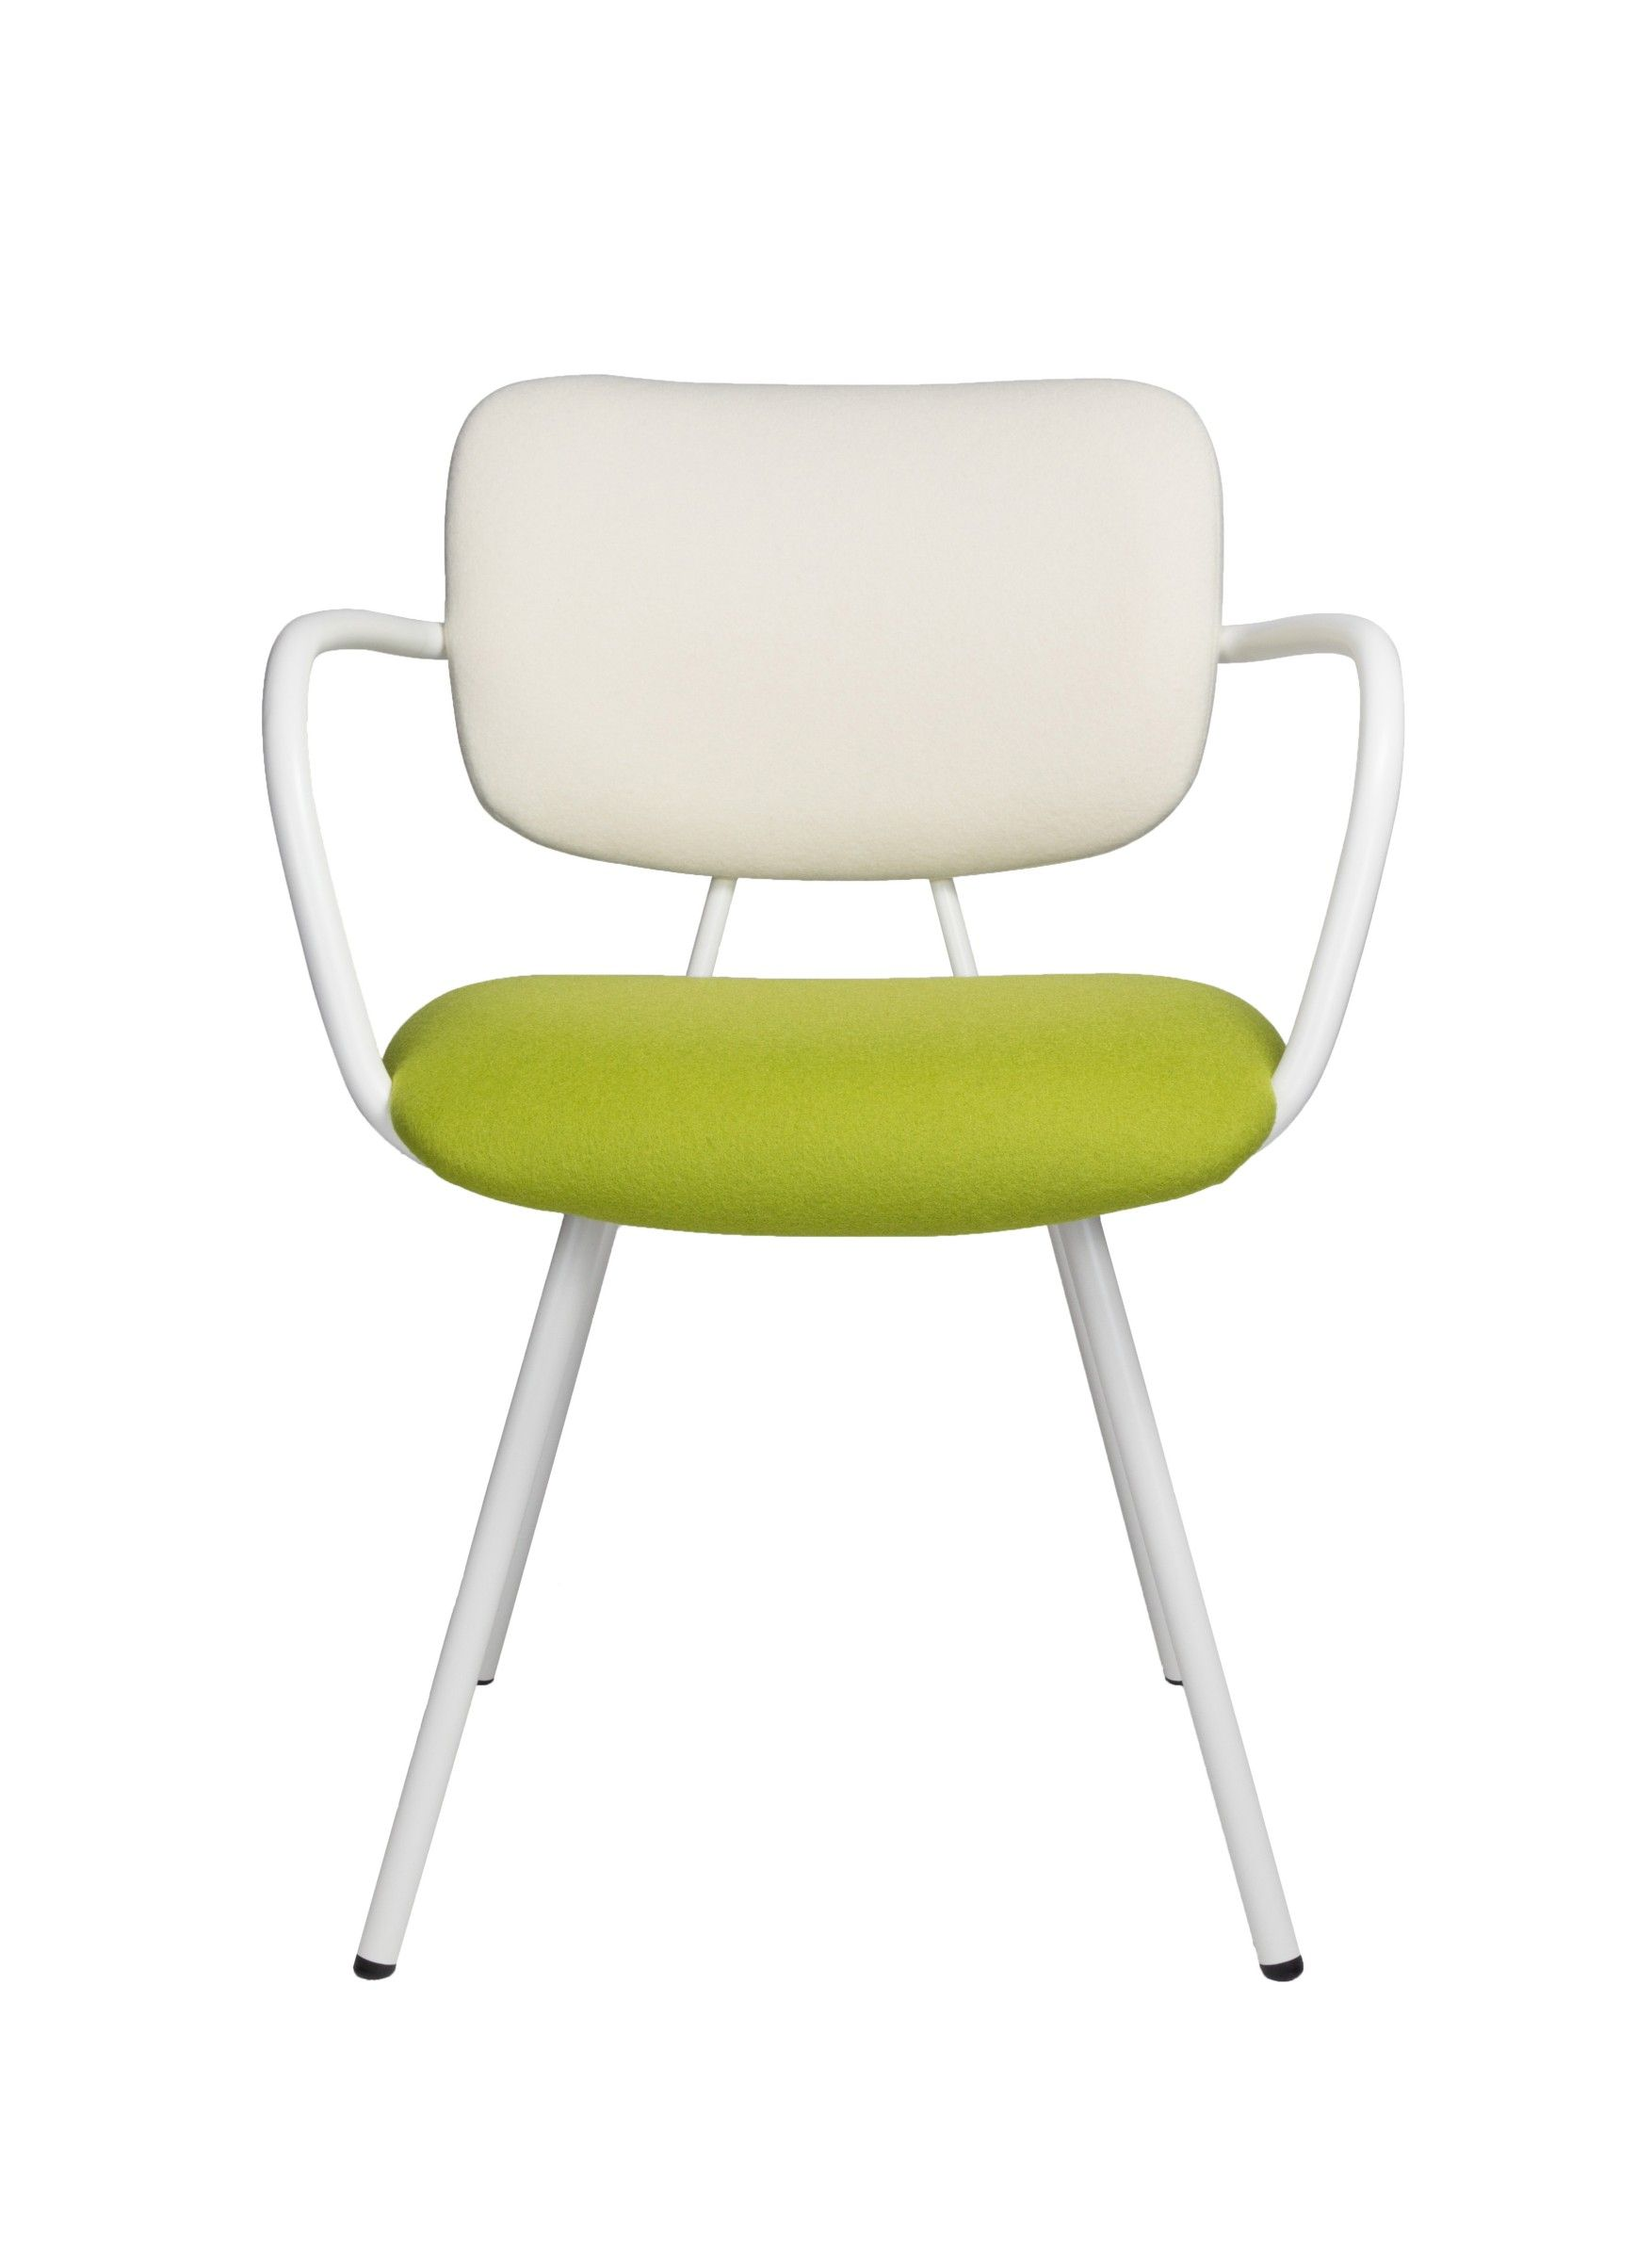 For Exsta We Designed The S085, A Chair With A Friendly